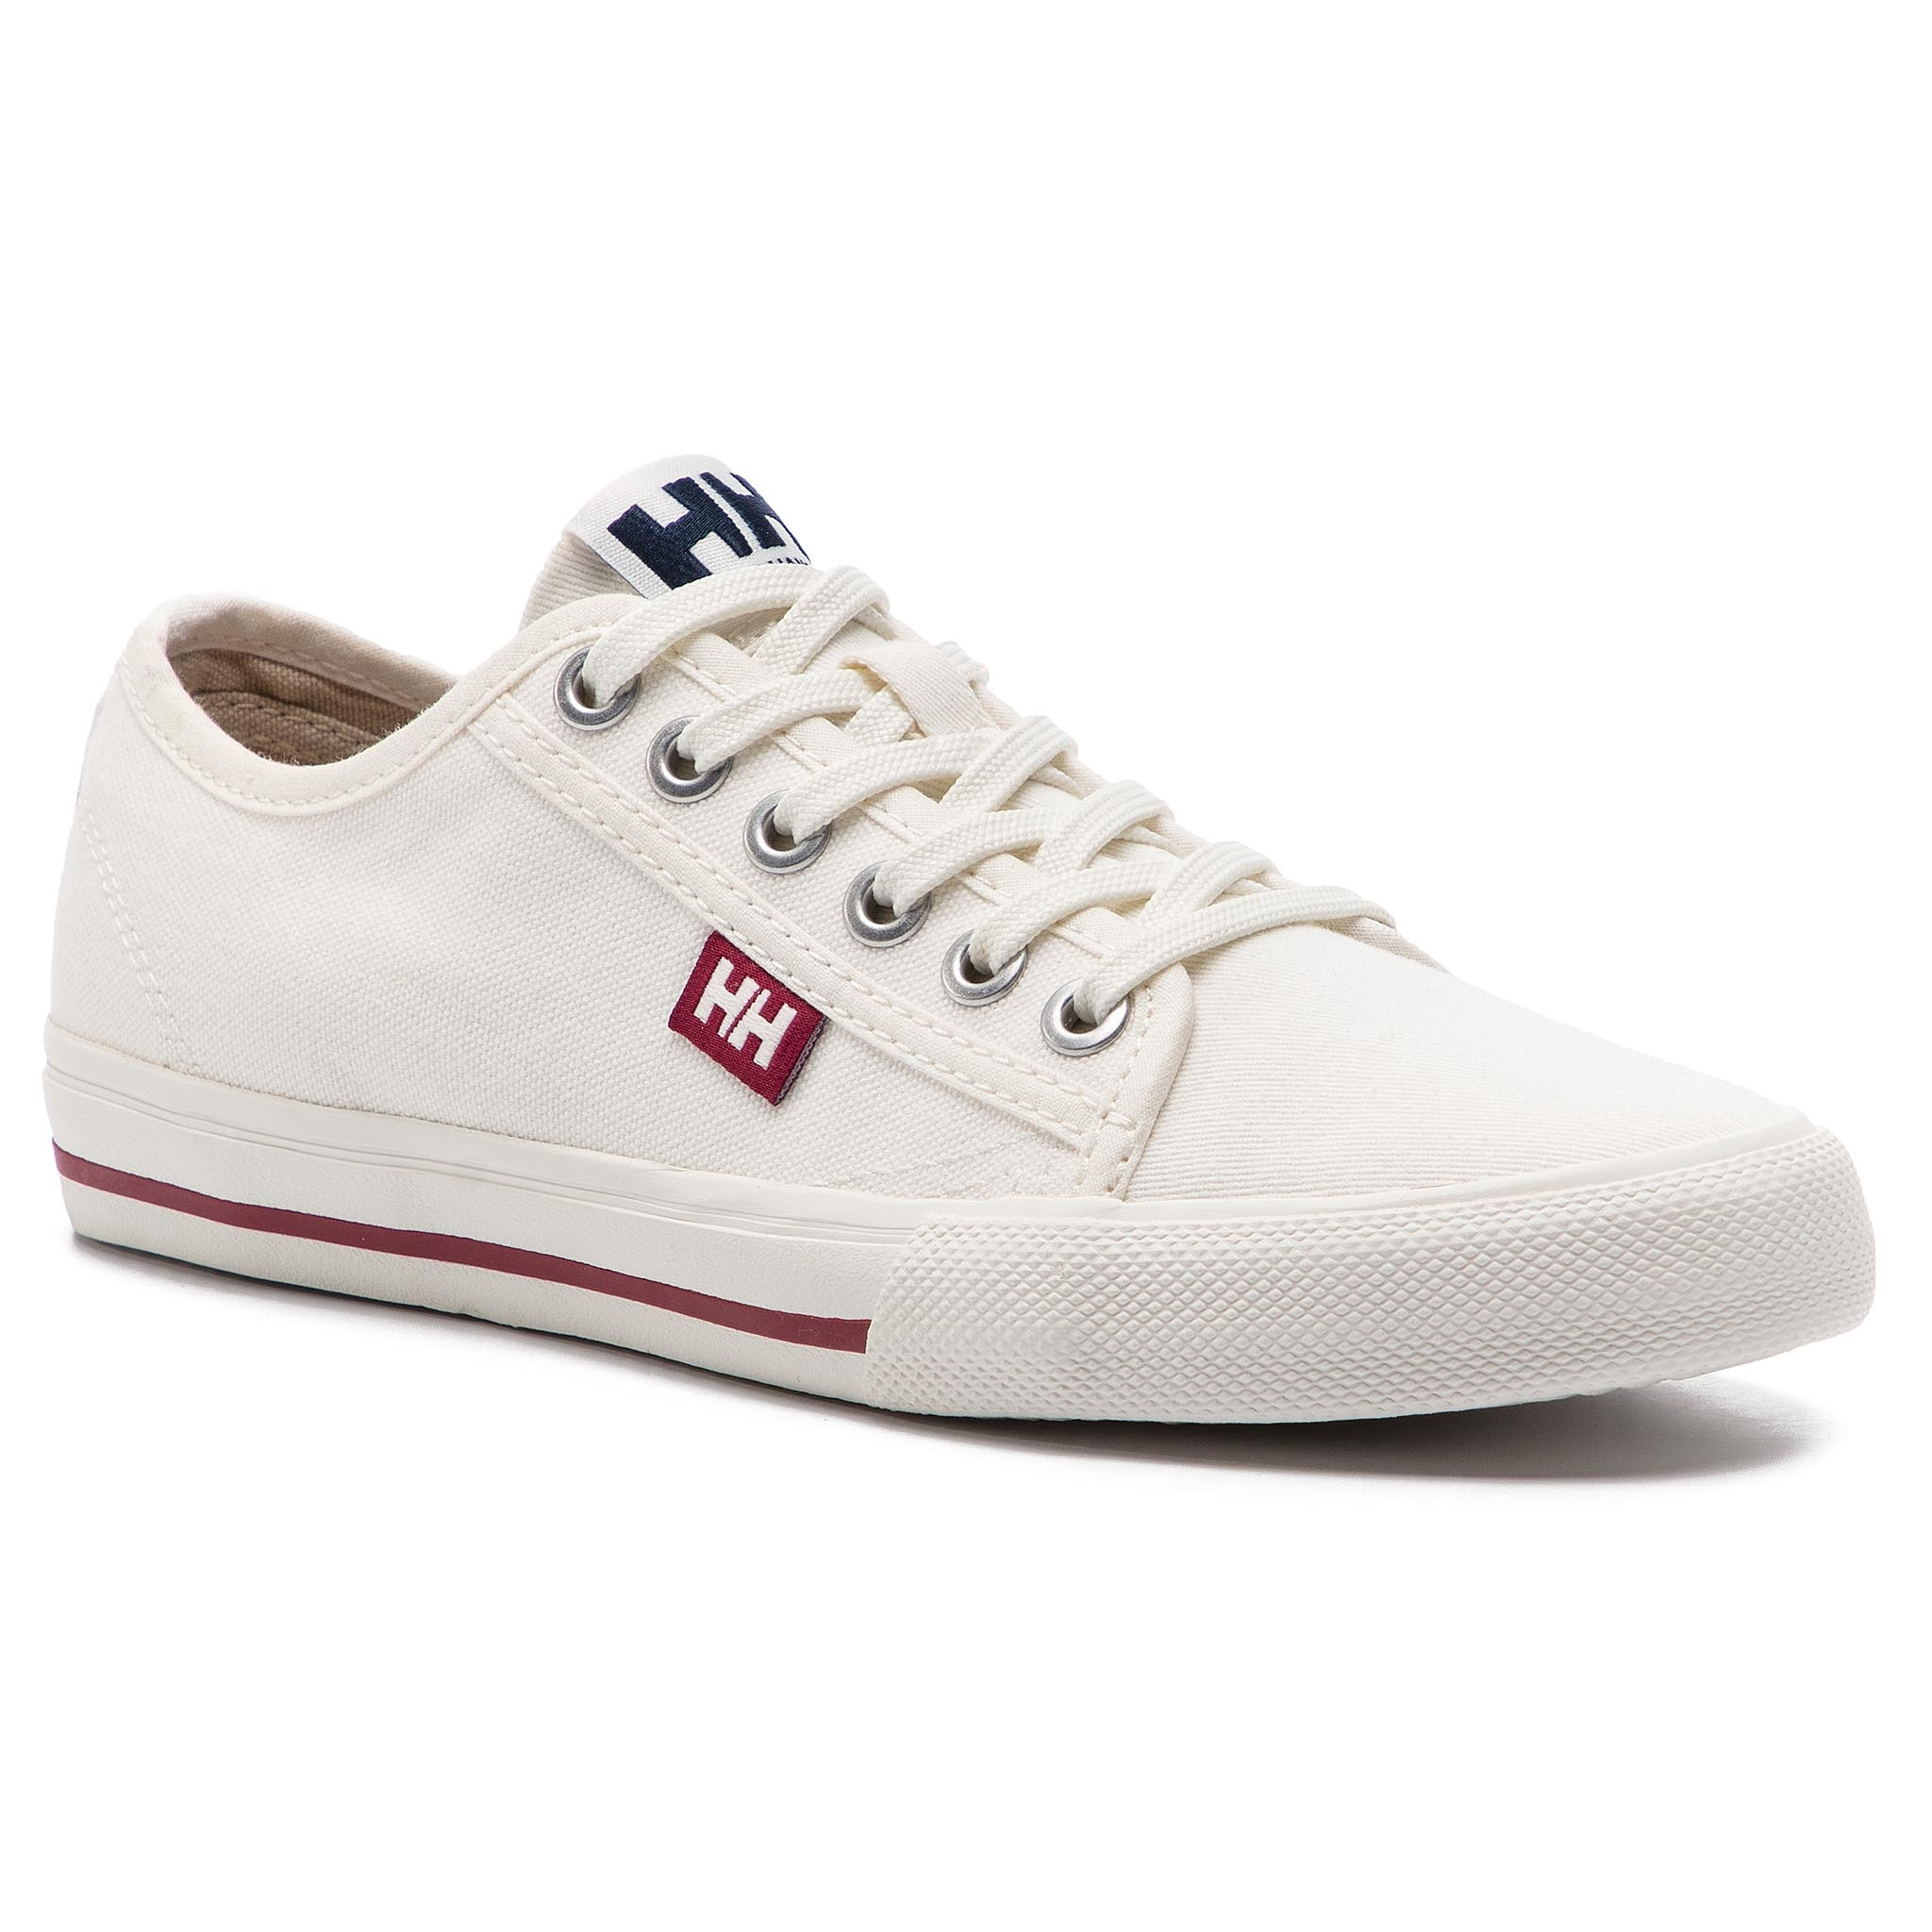 Sportbačiai HELLY HANSEN - Fjord Canvas Shoe V2 114-66.011 Off White/Beet Red/Navy